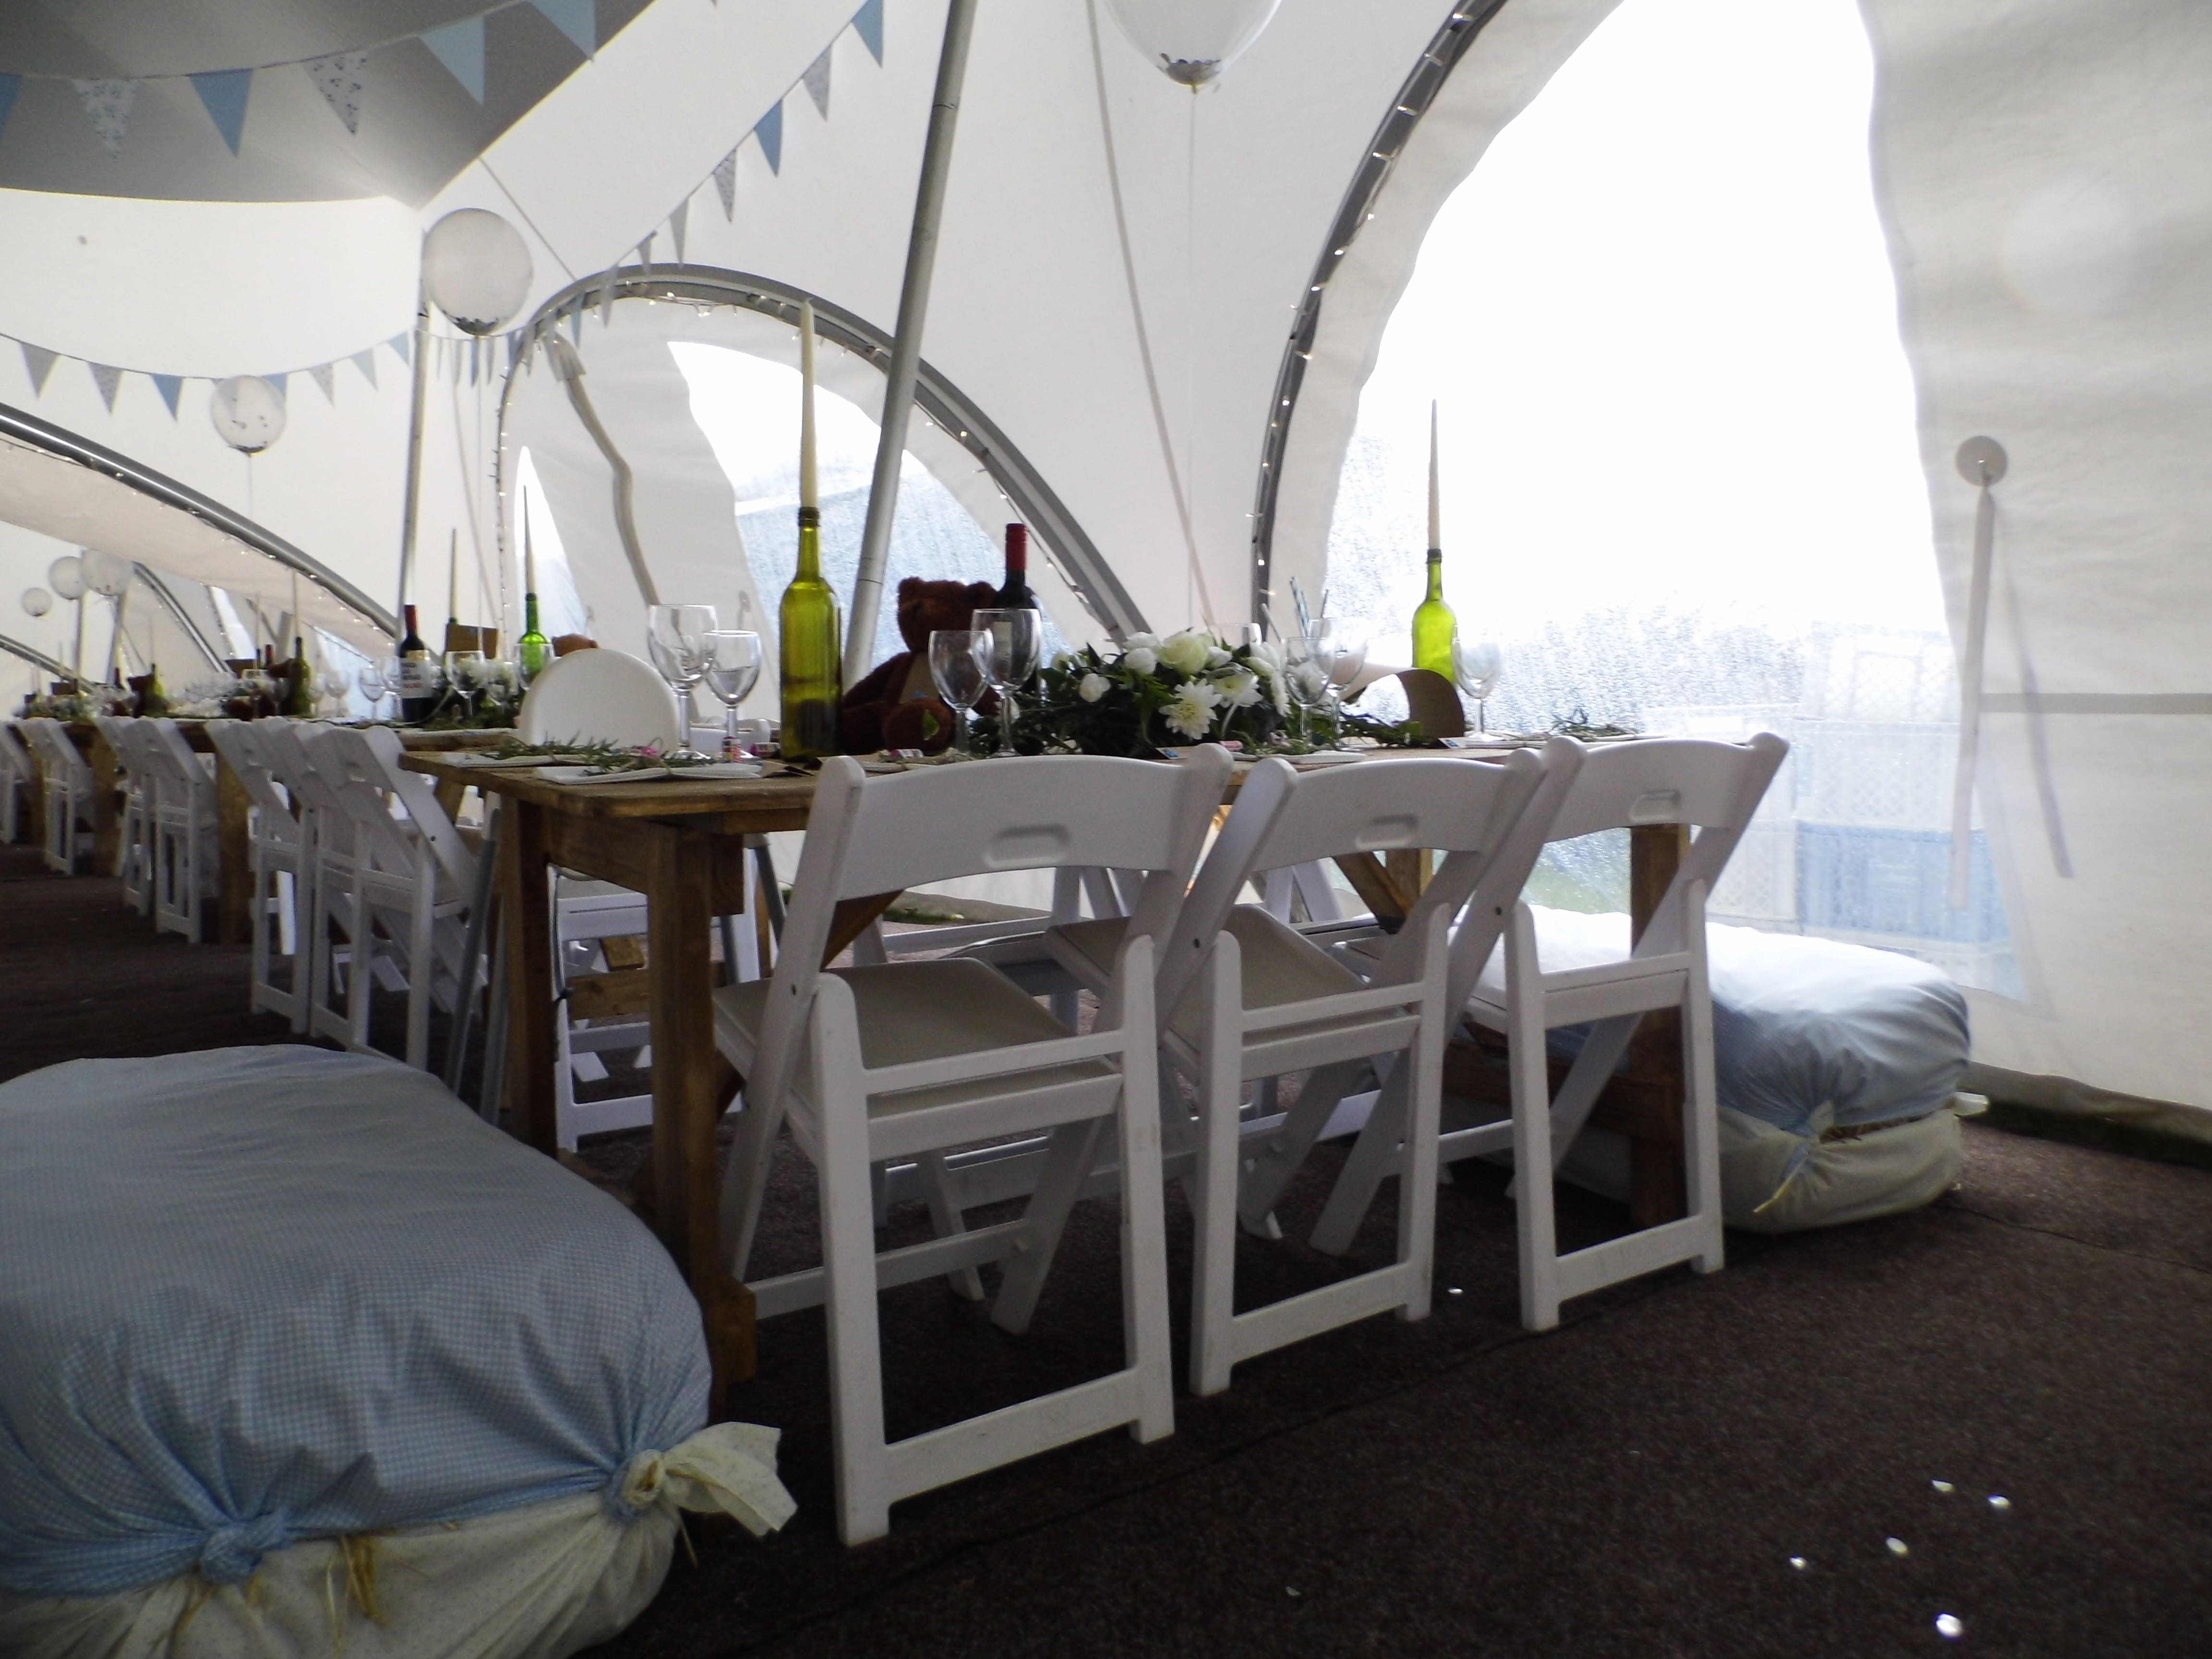 Tables set for a wedding in a marquee